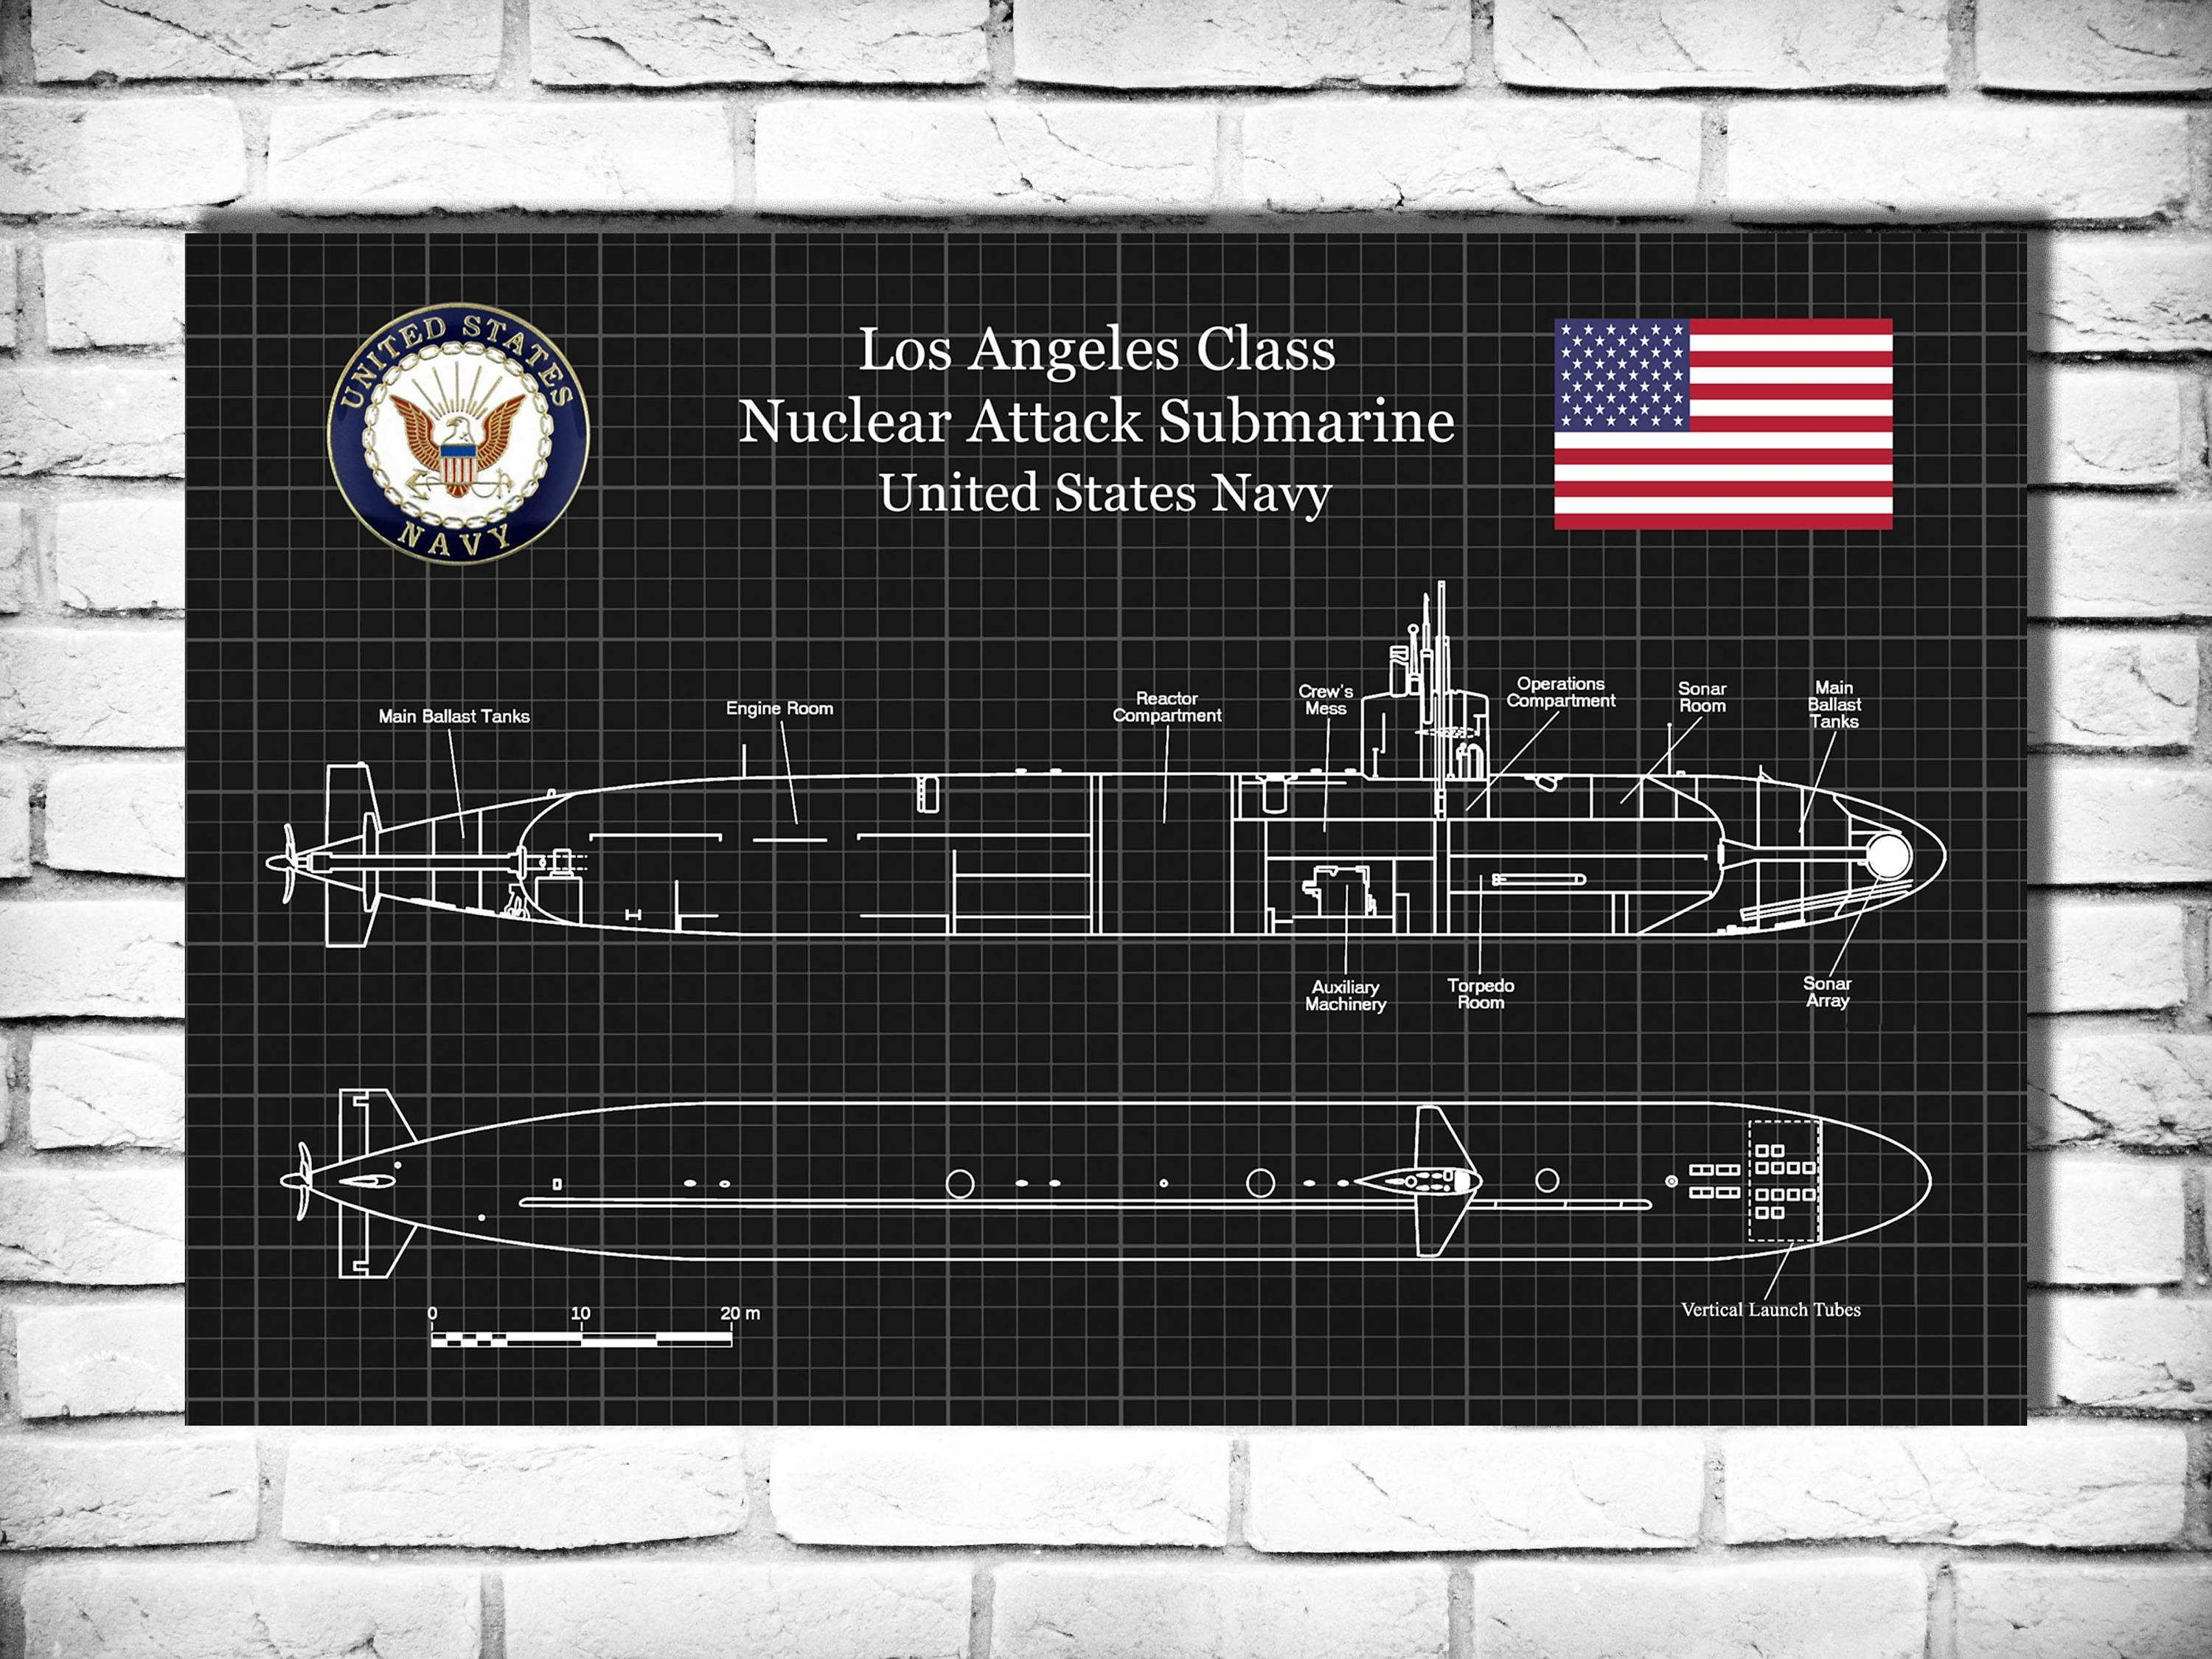 8 X 10 Wall Art Prints Luxury Uss Los Angeles Ssn 688 Class Submarine Art Print Poster Naval